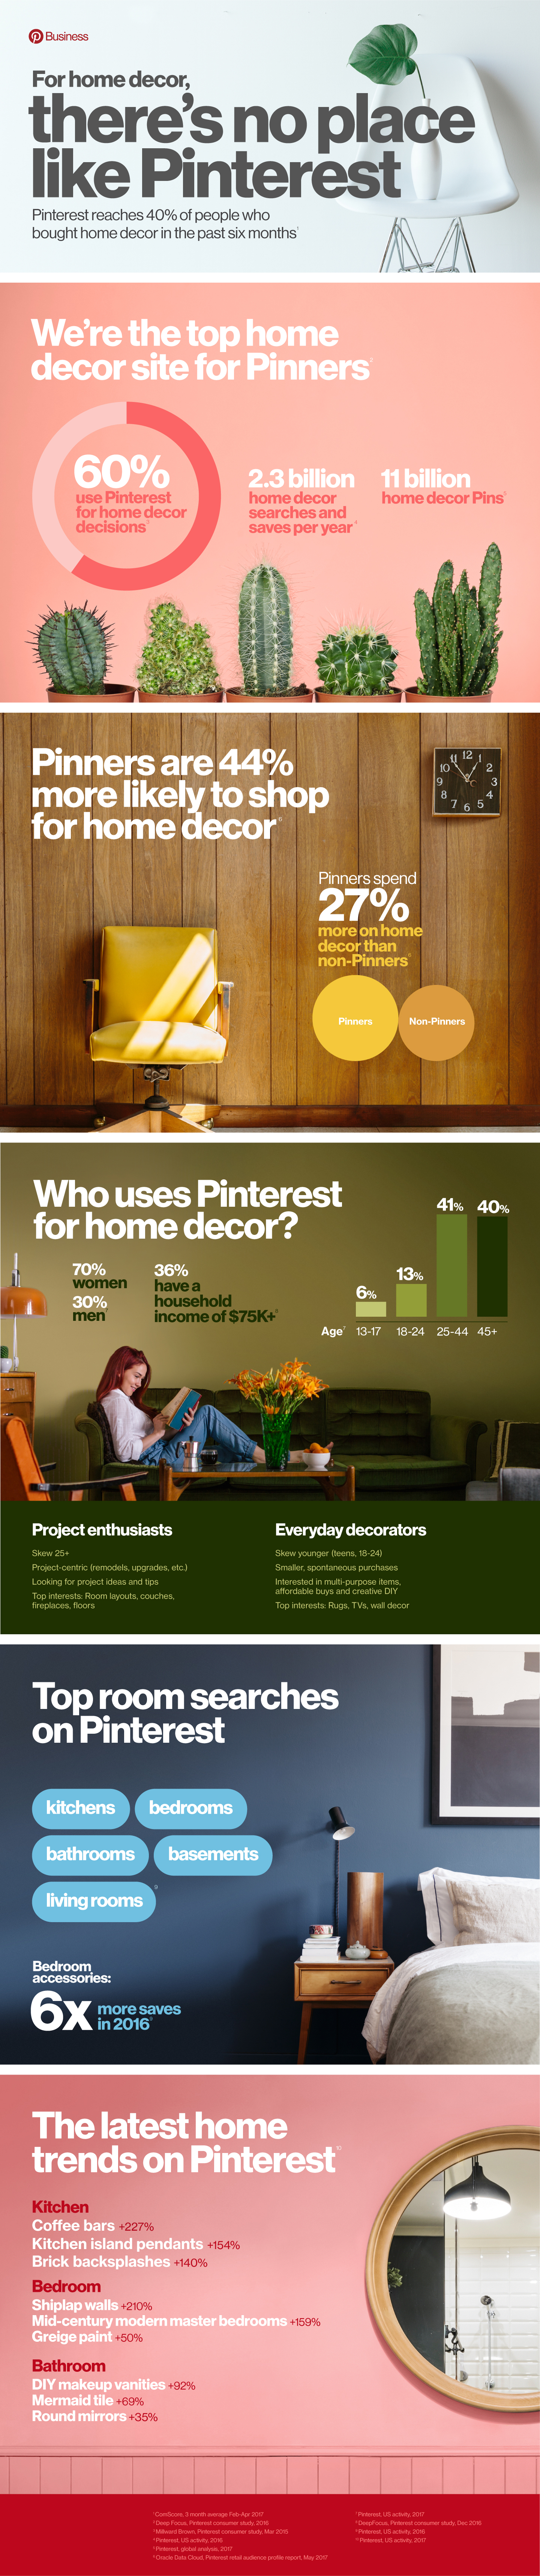 Pinterest Releases New Data on How People Use the Platform for Home Décor Shopping [Infographic] | Social Media Today